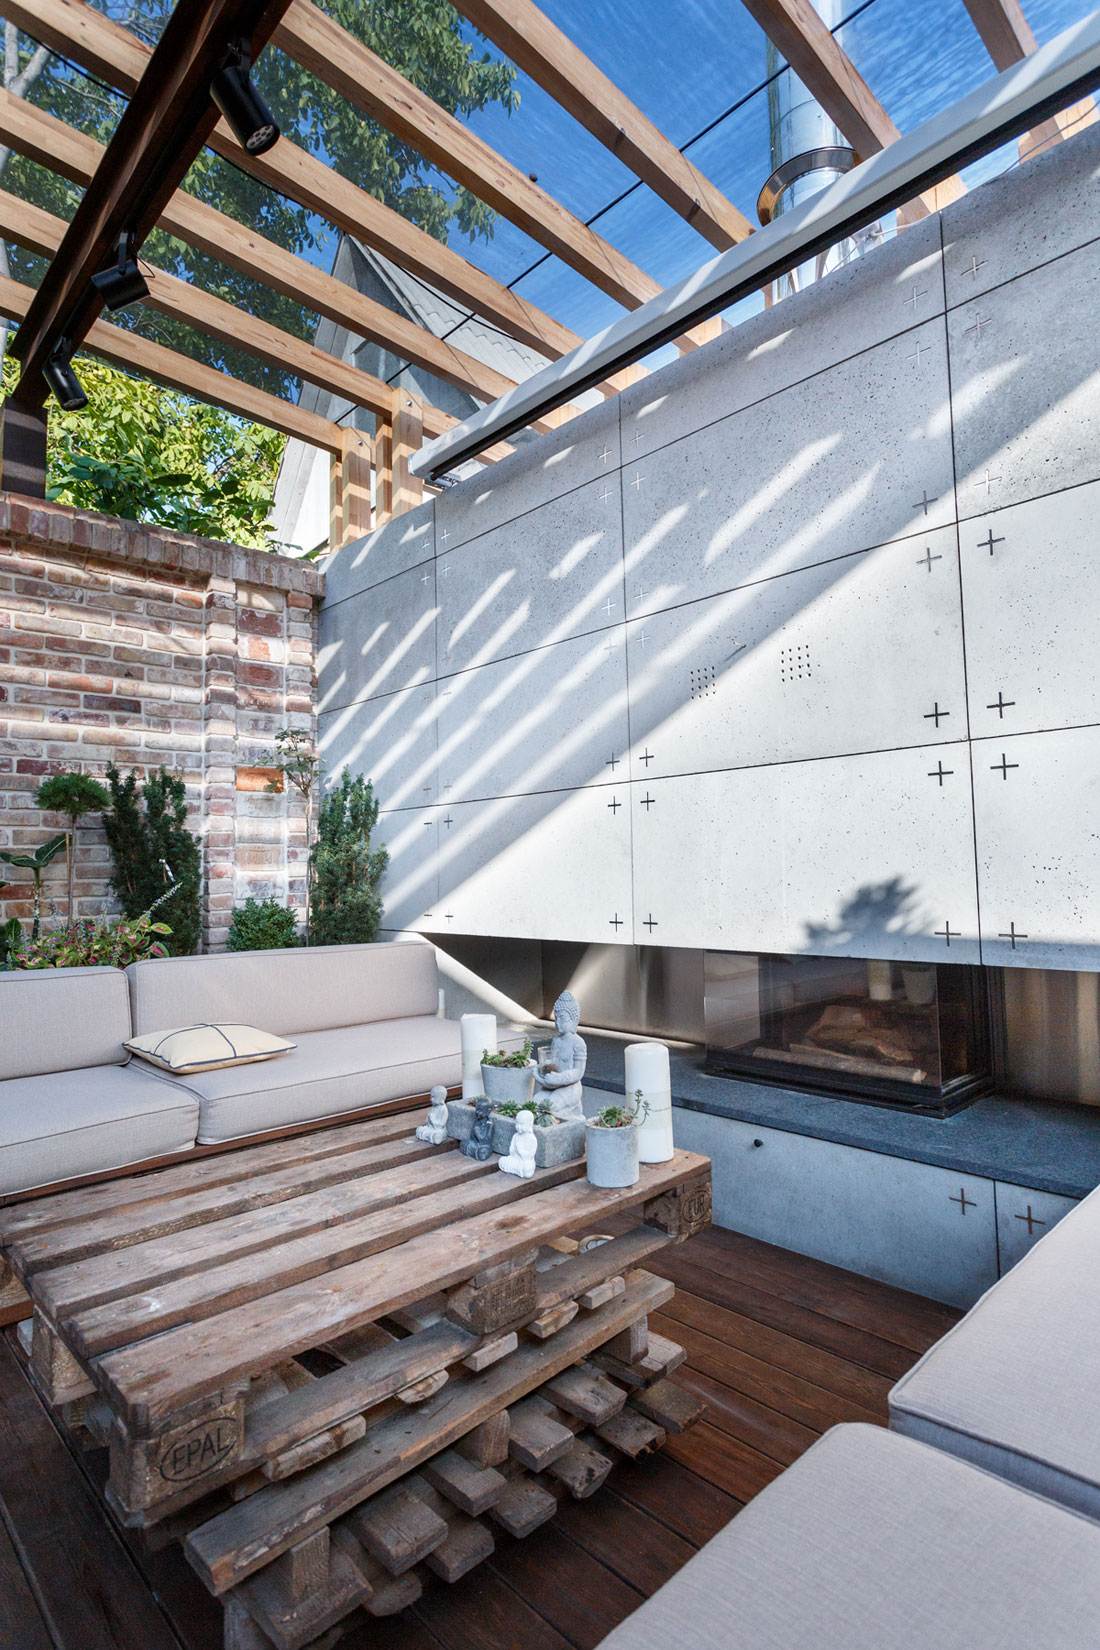 Contemporary Compact Courtyard of Lounge Zone by SVOYA studio-11